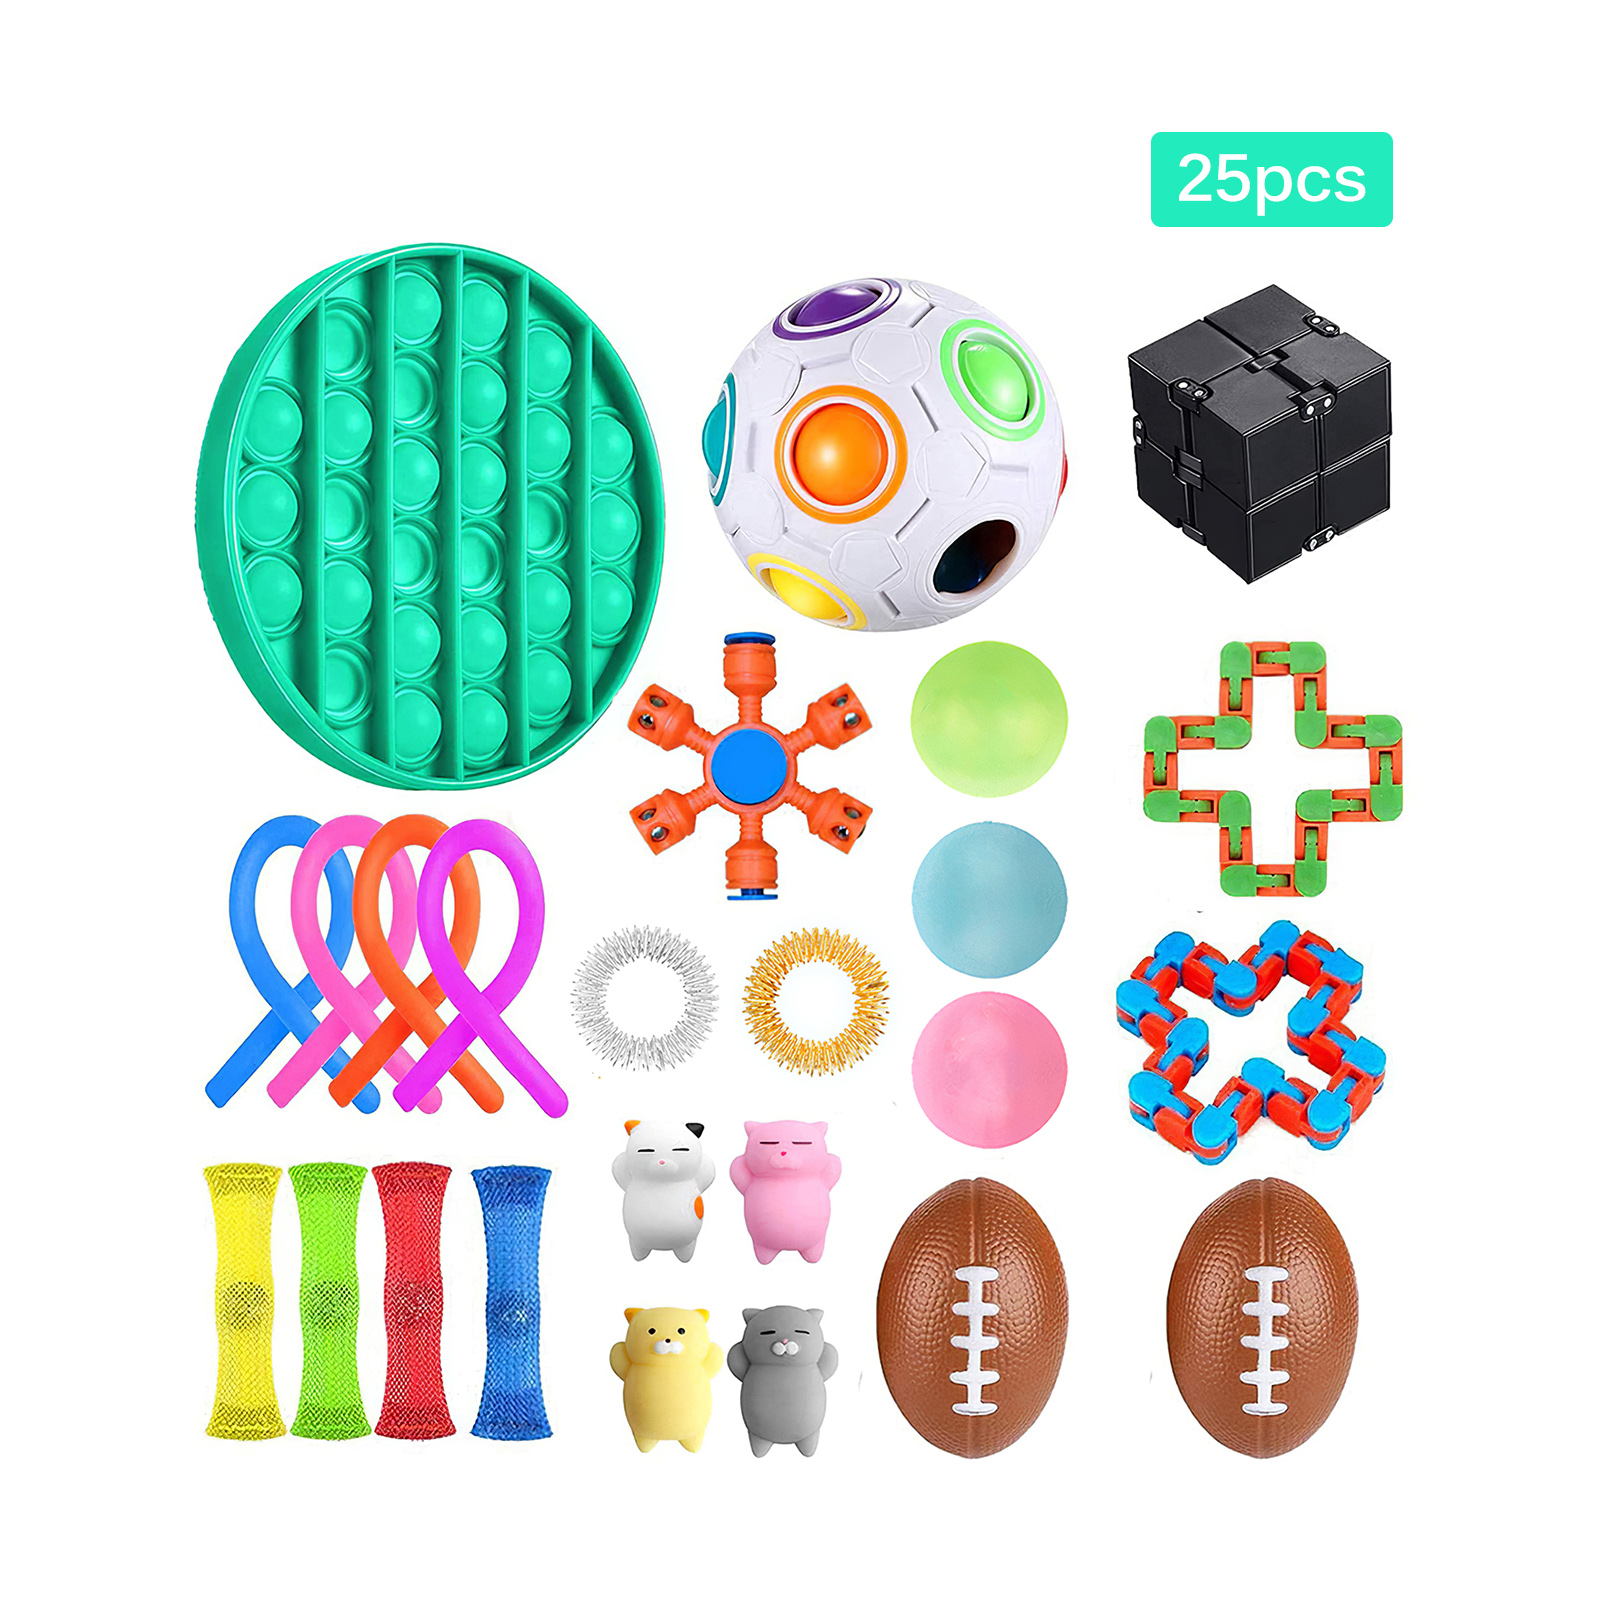 25Pcs/Pack Fidget Sensory Toy Set Stress Relief Toys Autism Anxiety Relief Stress Pop img1